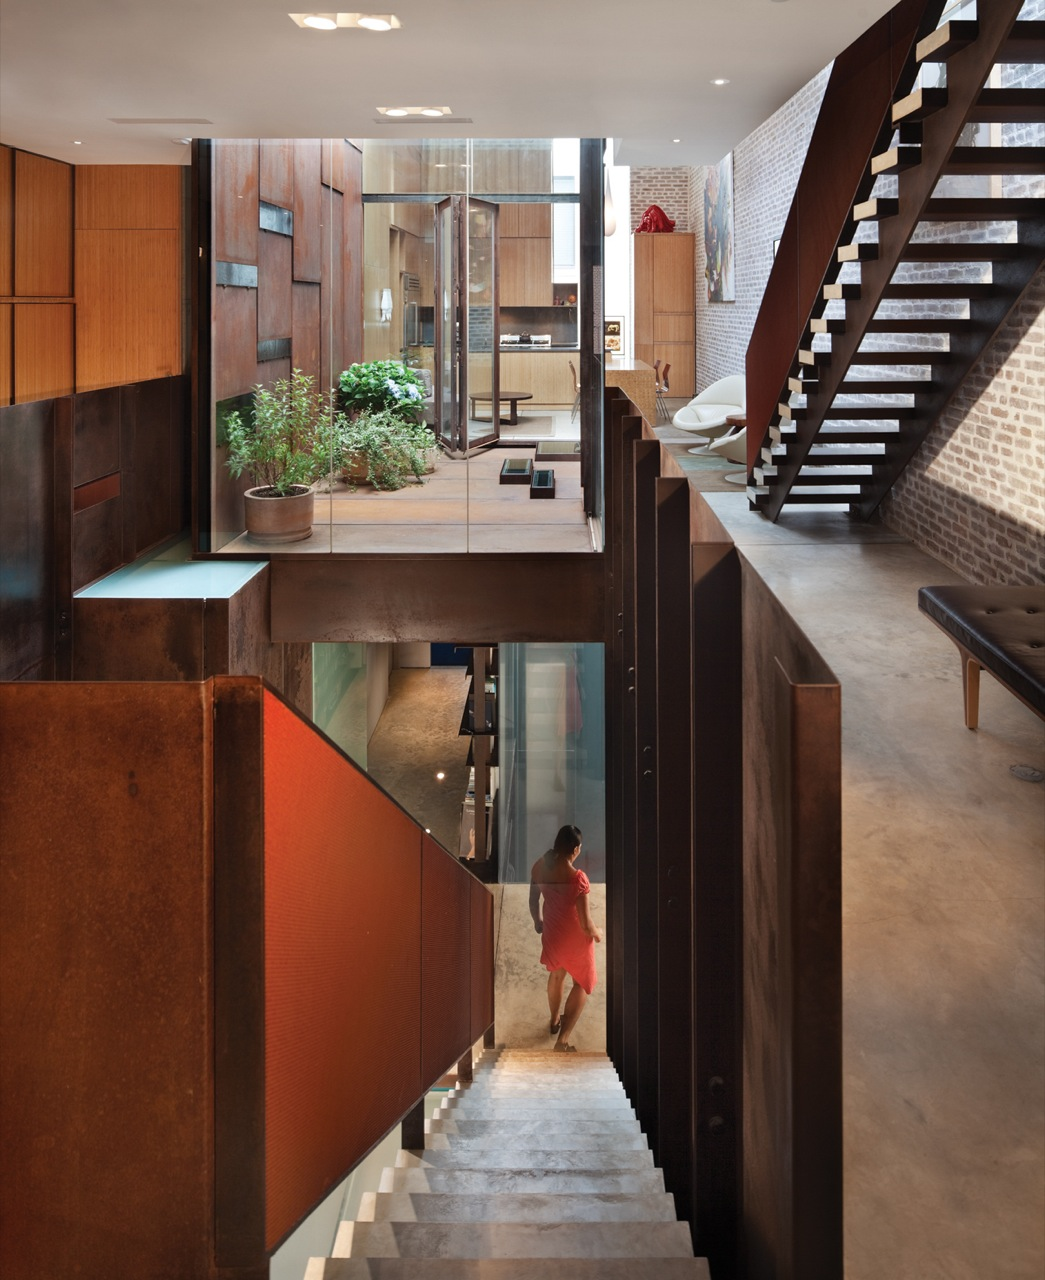 Inverted Warehouse - Townhouse / Dean-Wolf Arquitectos, © Paulo Warchol